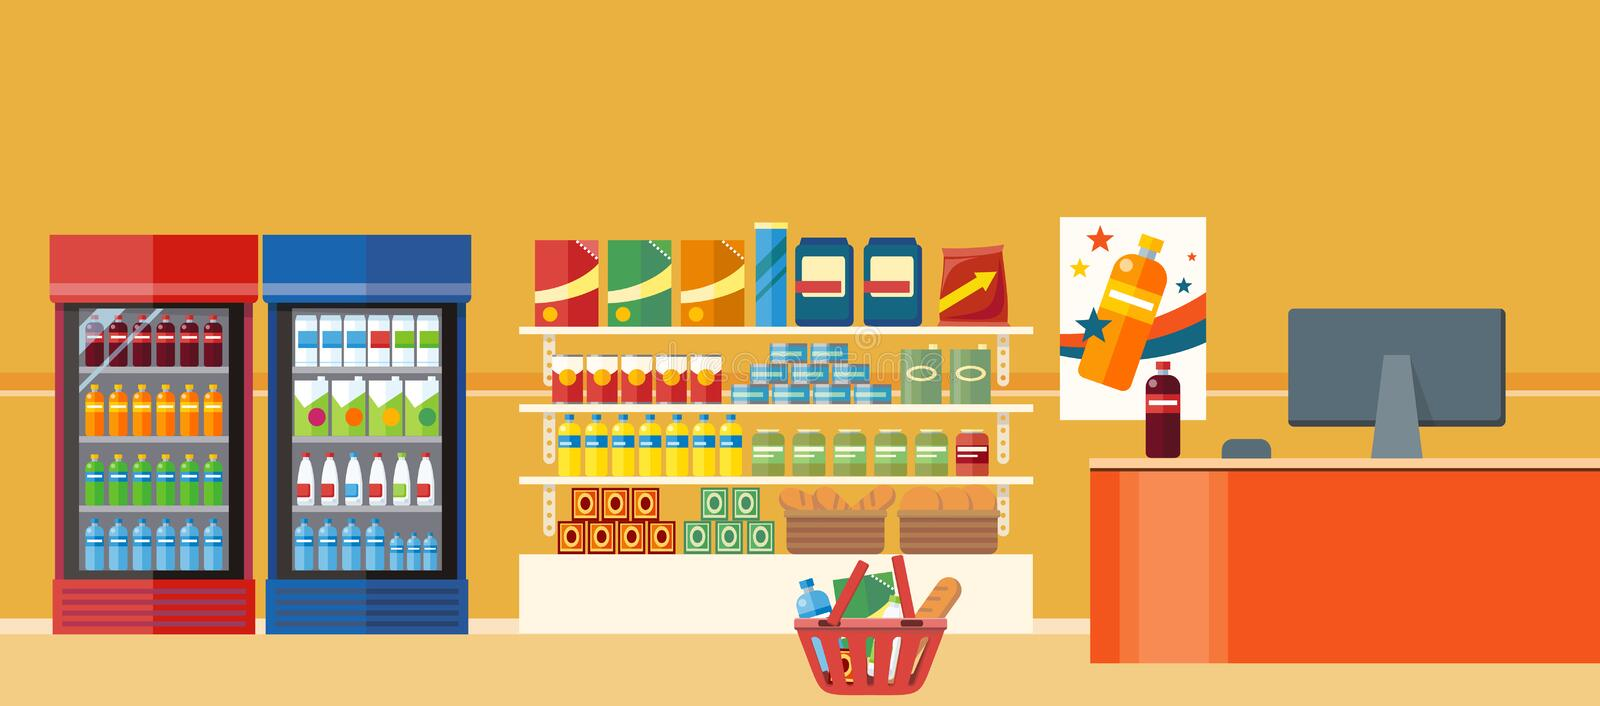 Supermarkets and Grocery Stores. Retail shop for buy product on shelf, purchase and department food, sale and cart with variety food, interior hypermarket vector illustration